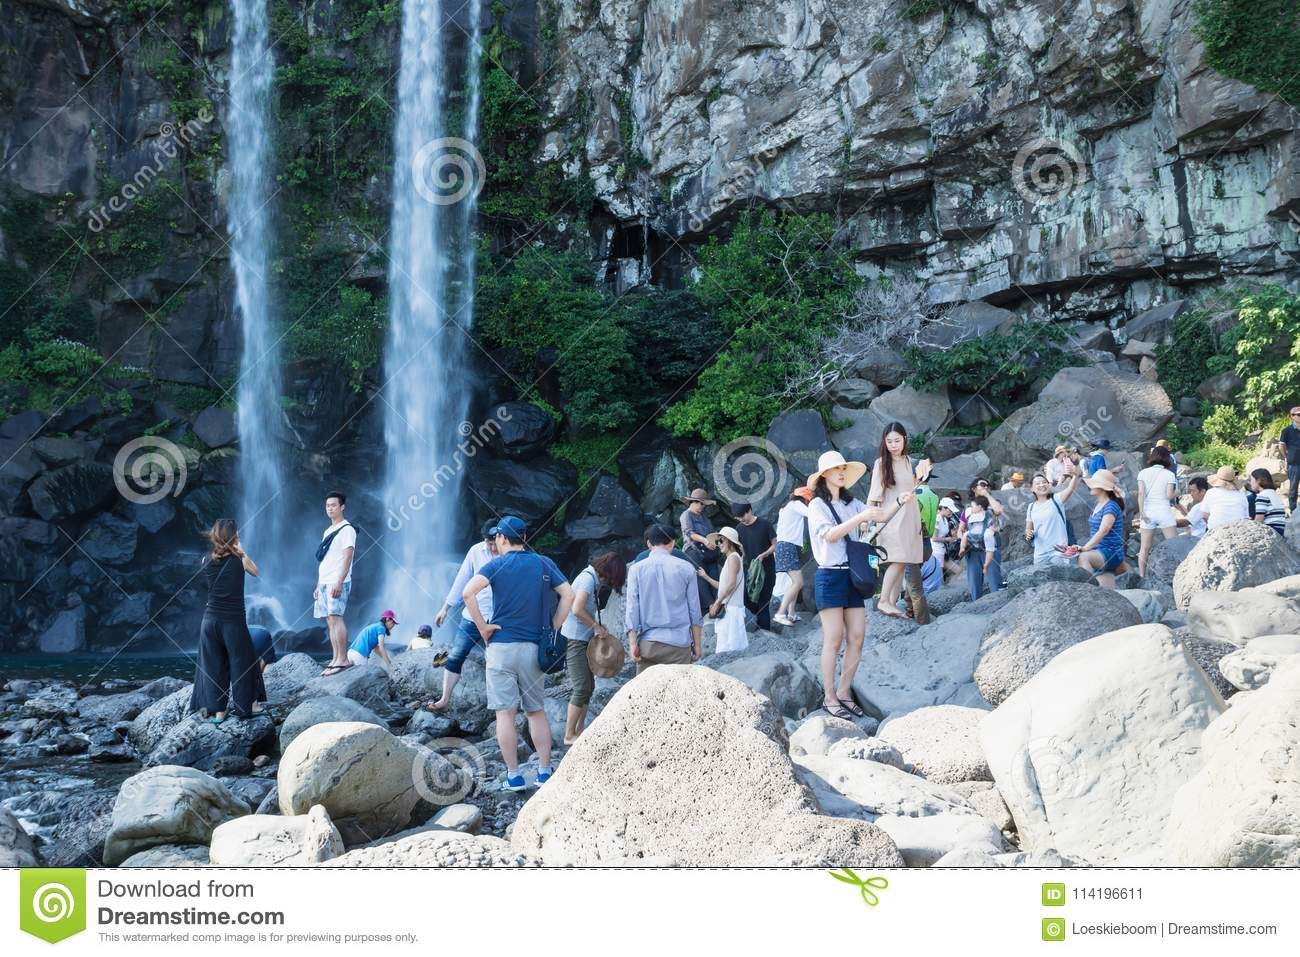 Tourists making pictures at the Jeongbang waterfall in Seogwipo, Jeju Island, South Korea